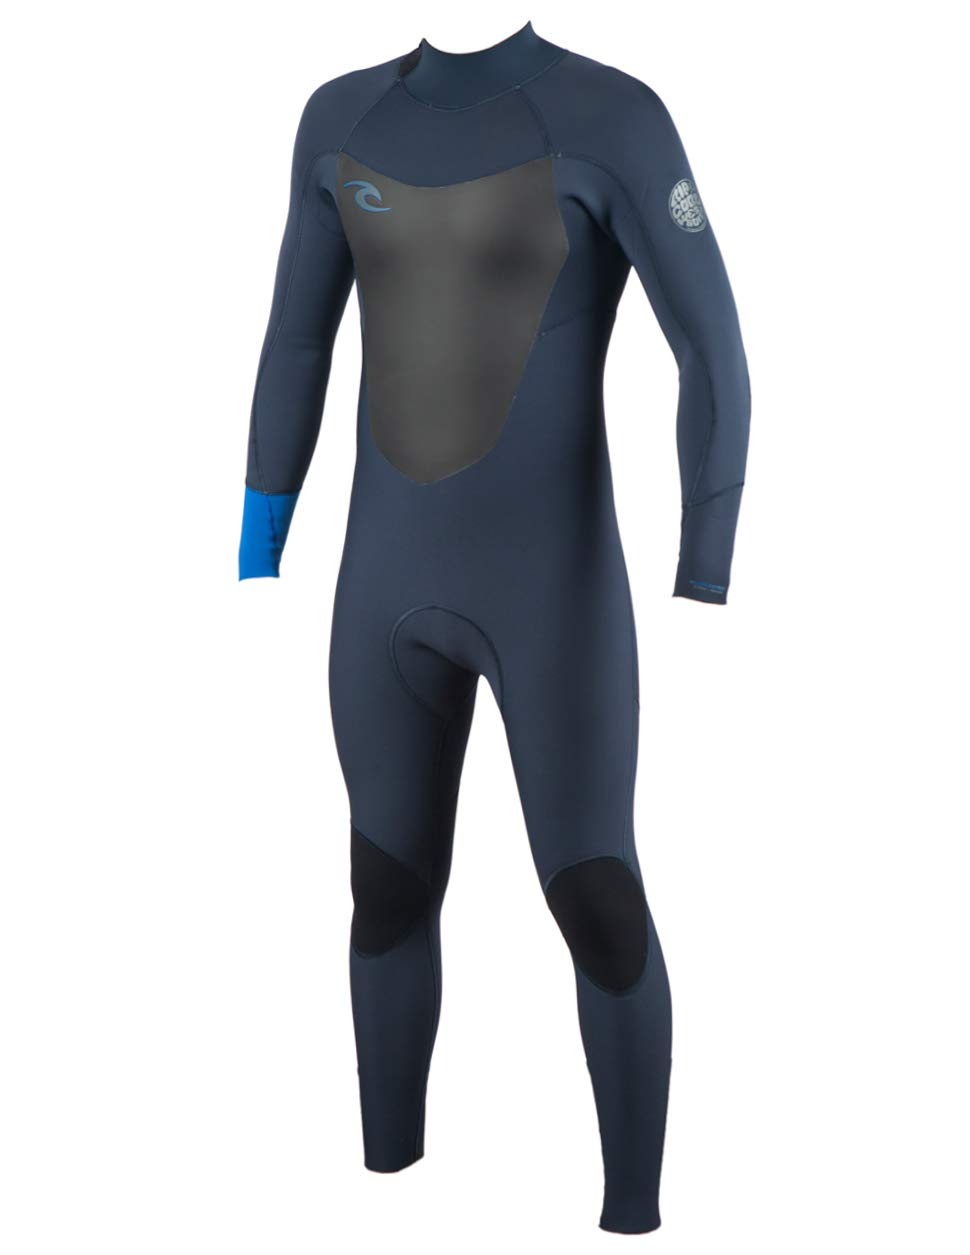 Rip Curl Dawn Patrol Back Zip 4/3 Wetsuit, Blue, Large by Rip Curl